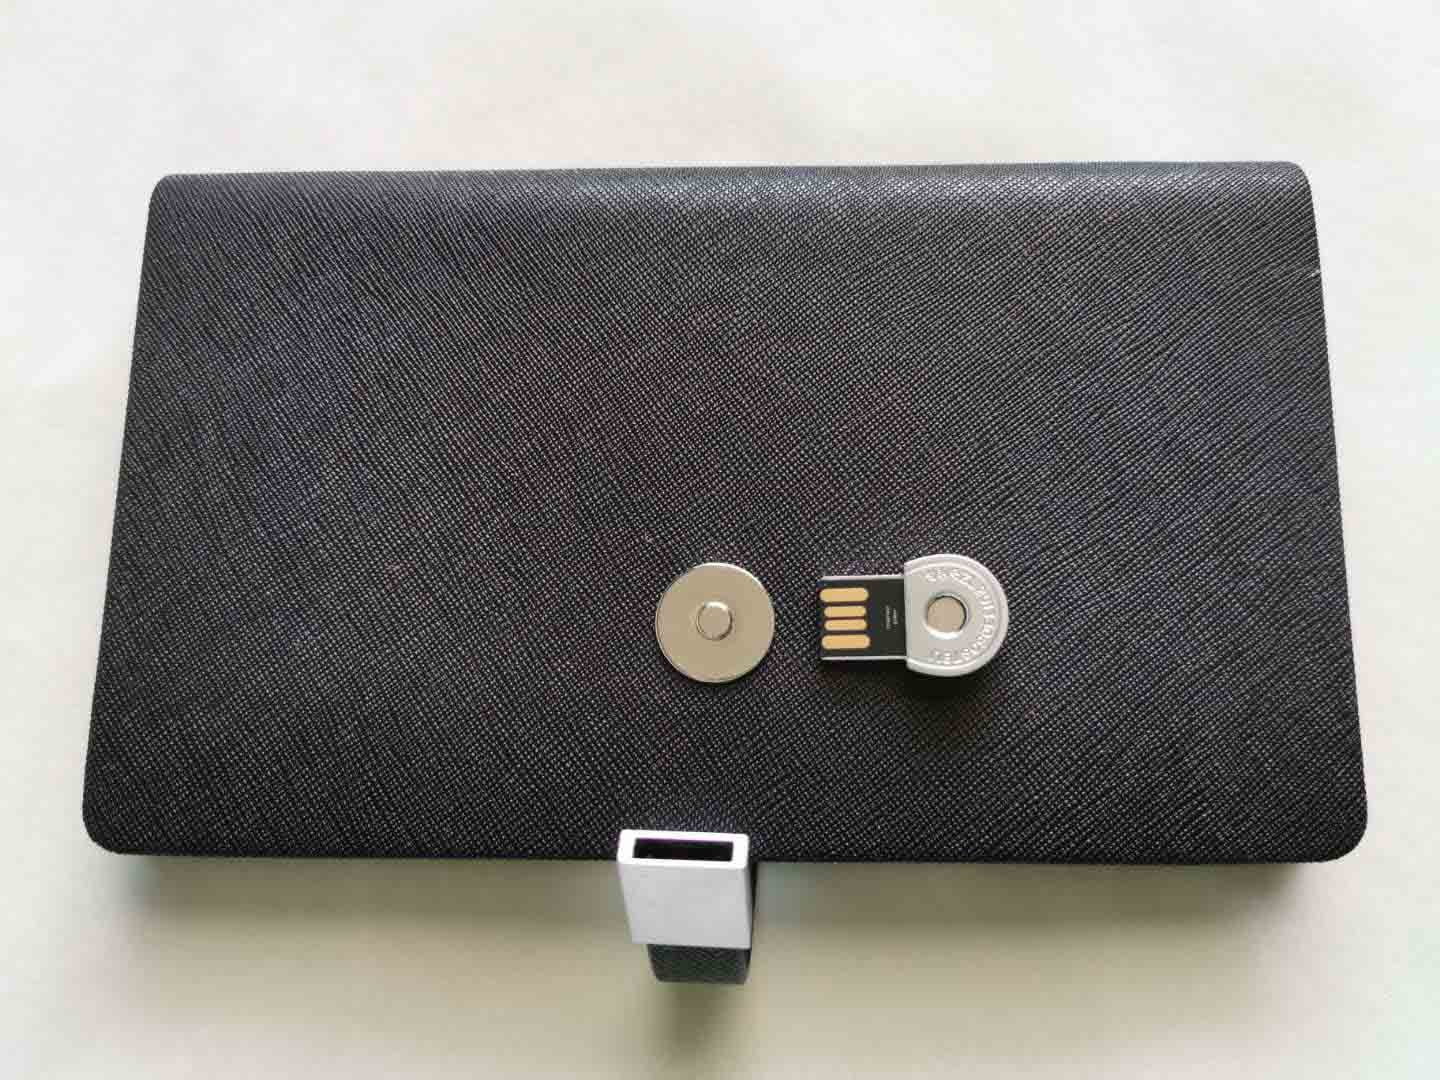 Business Notebook integrated with USB Key Lock